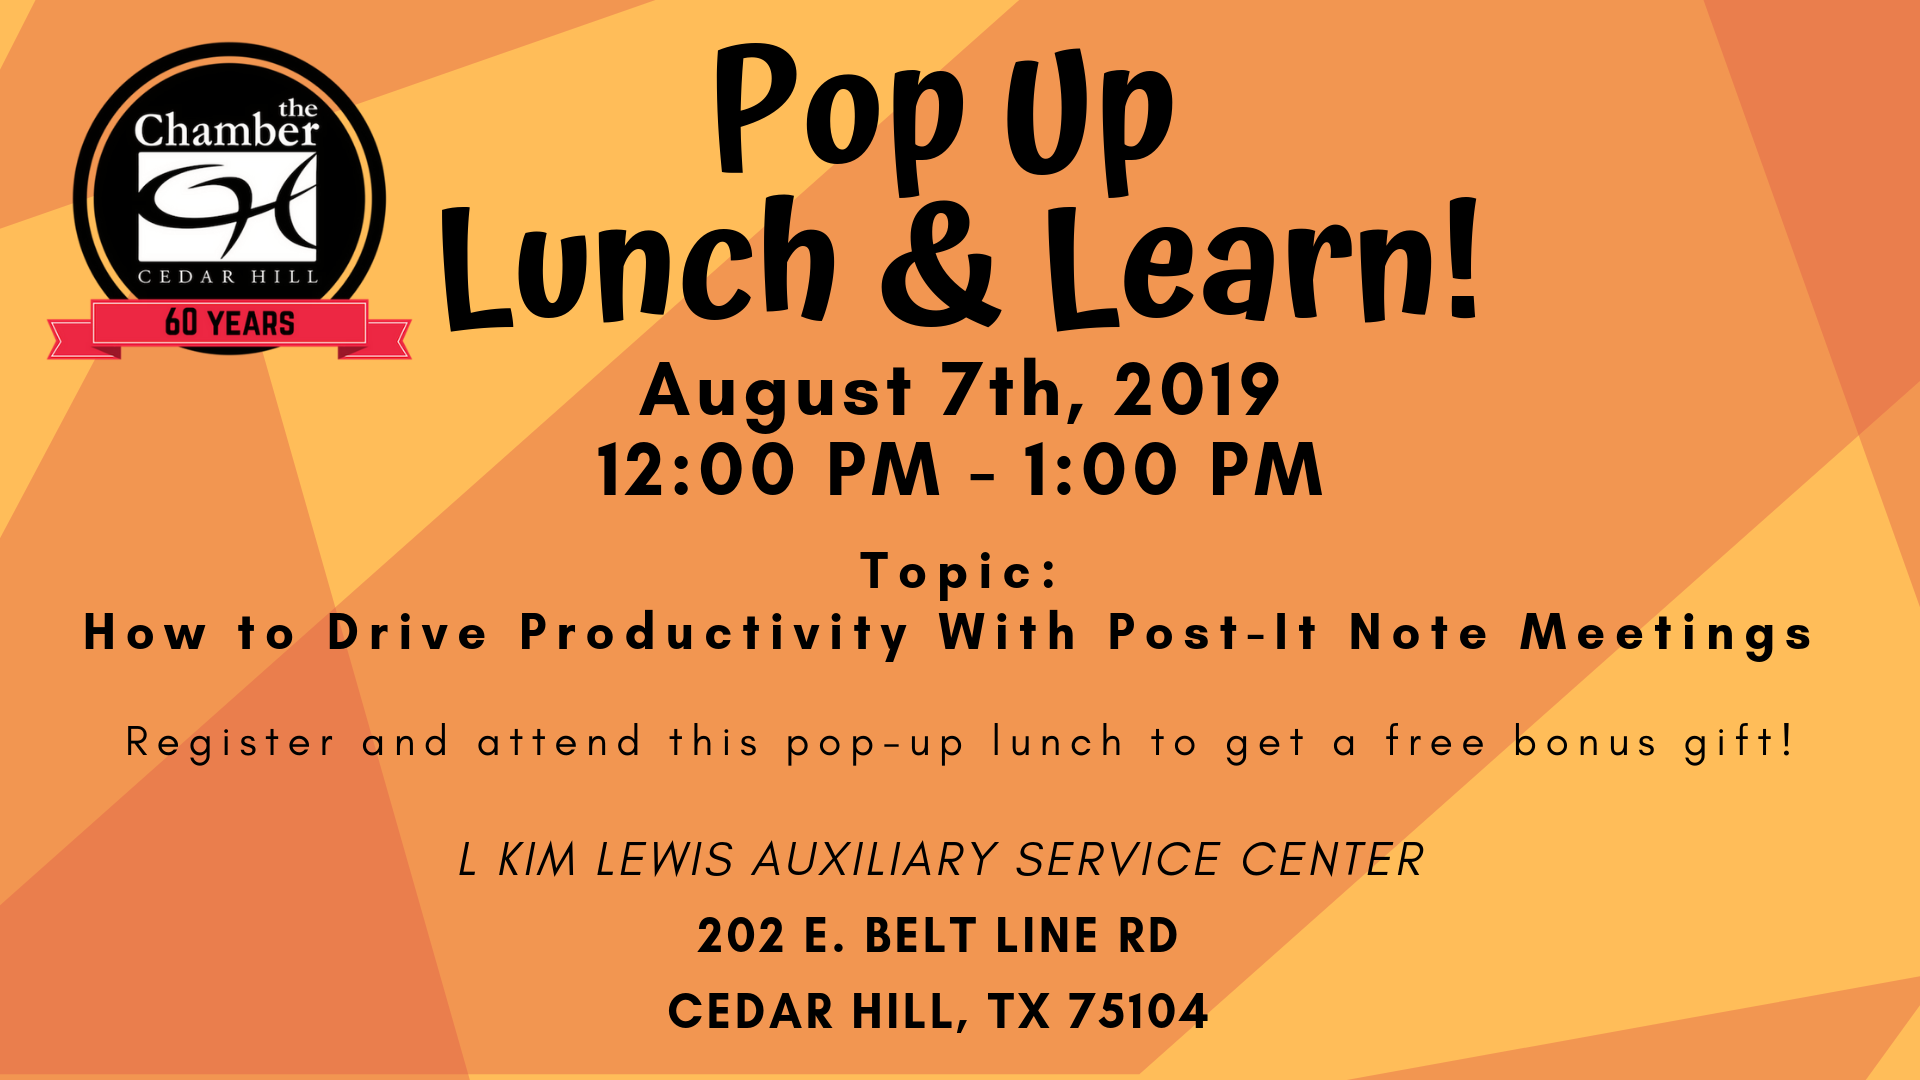 Pop Up Lunch & Learn - Aug 7, 2019 - Public Layout Events